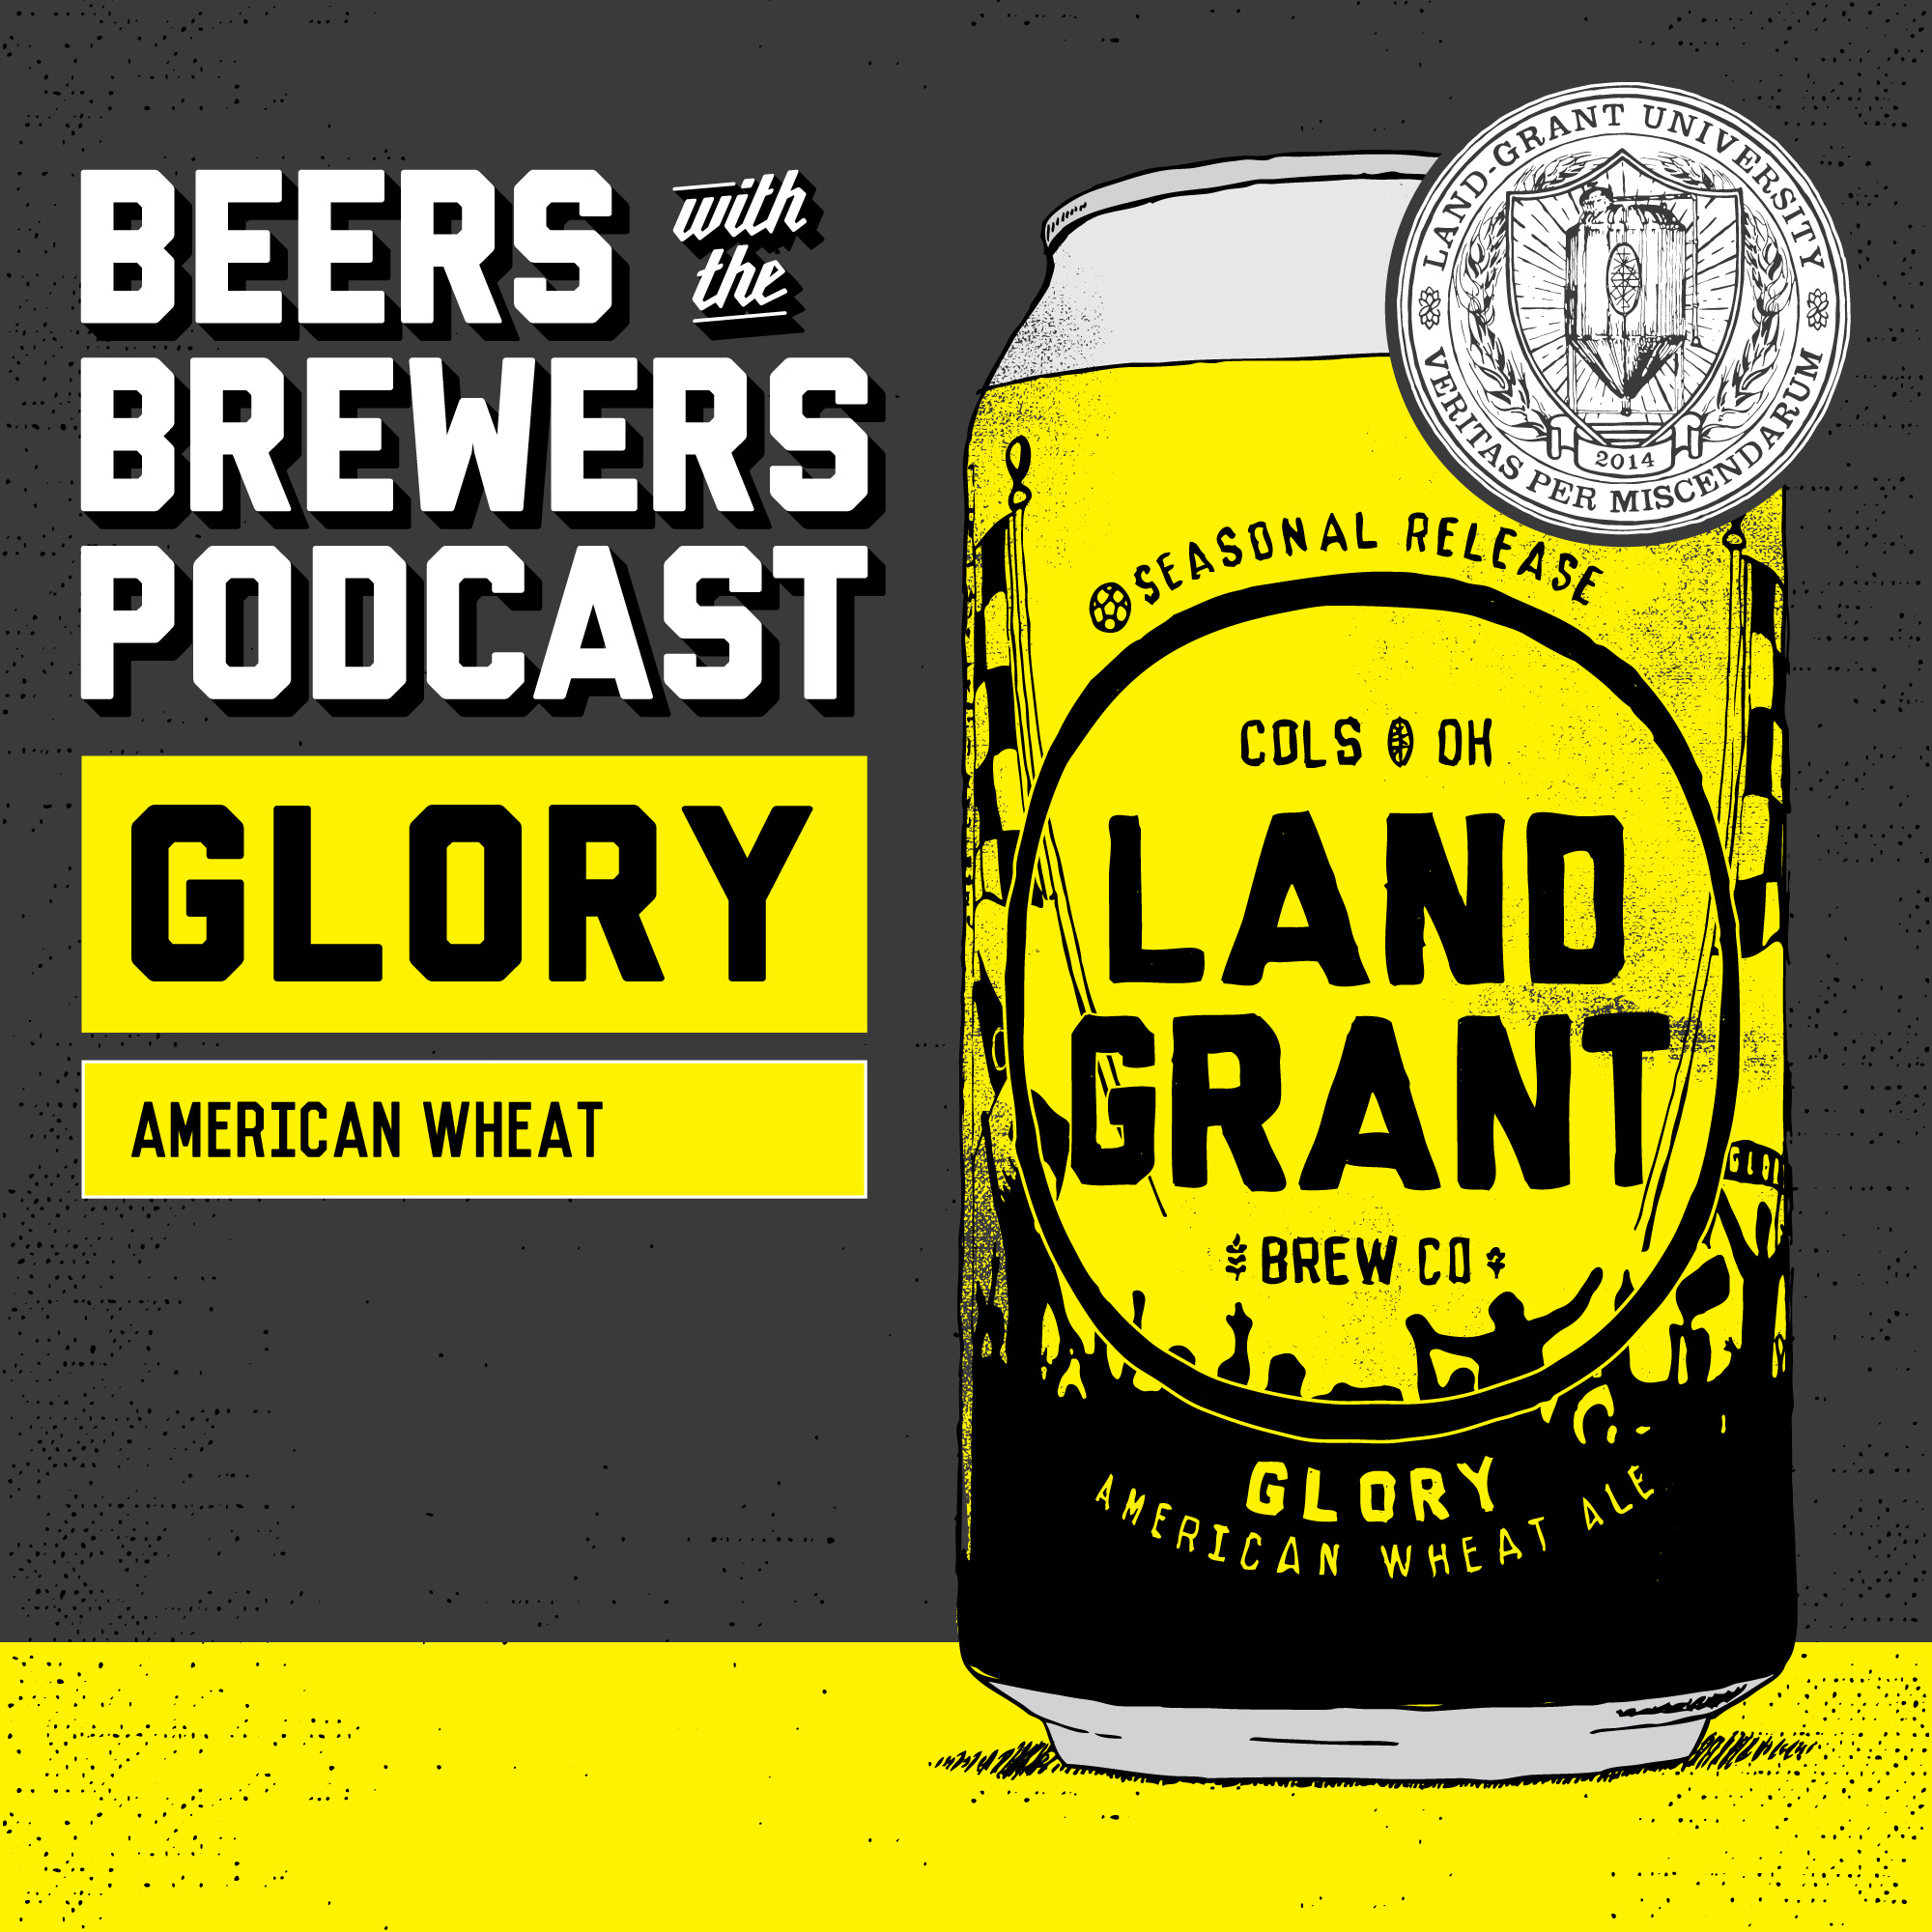 Glory - American Wheat - Beers with the Brewers